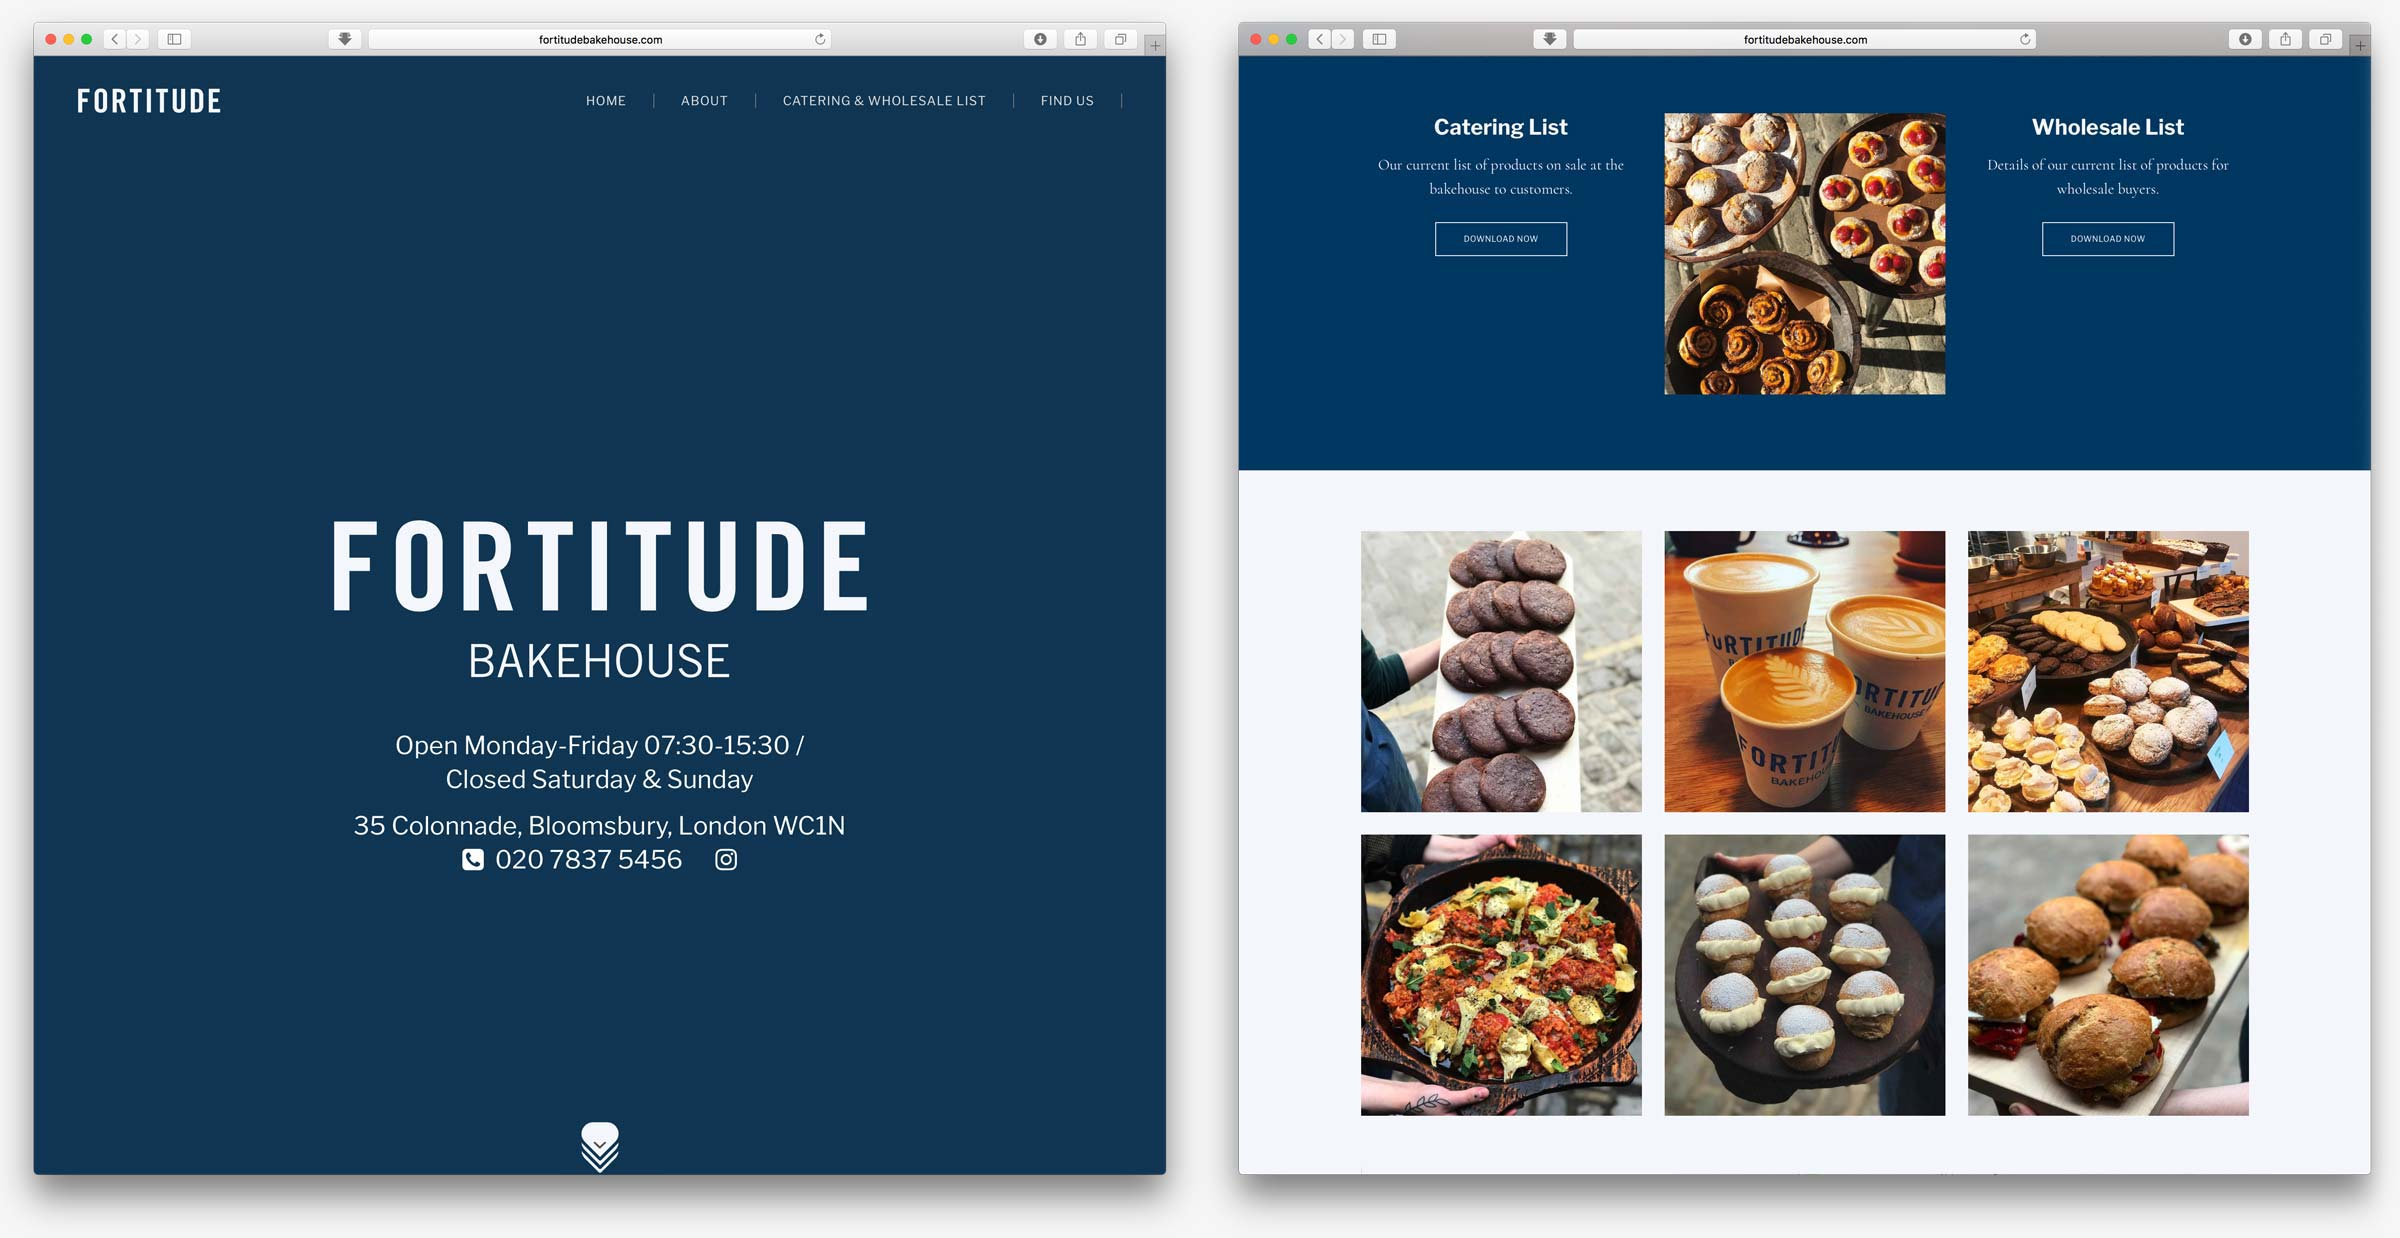 Fortitude website